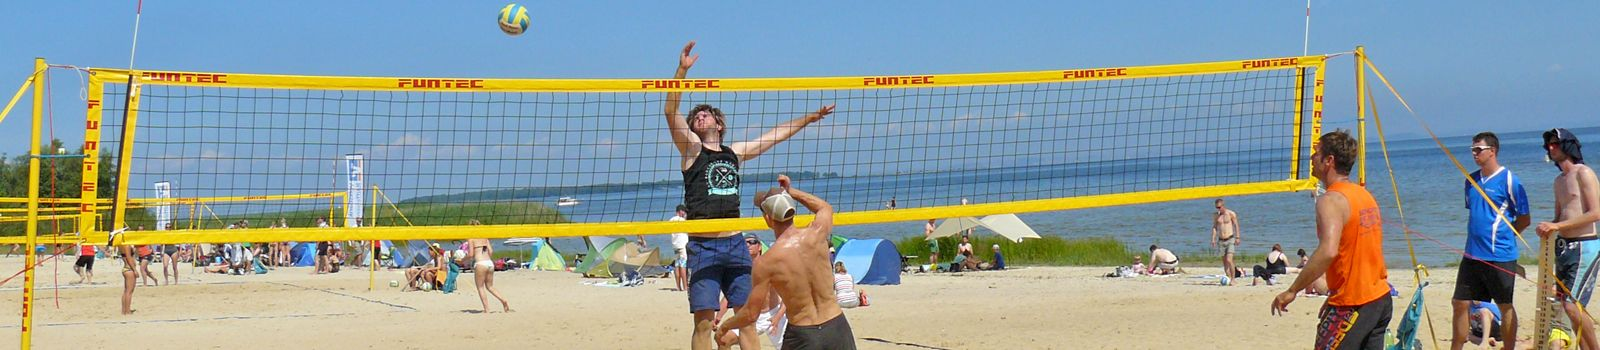 Beachvolleyball-Turnier in Freest